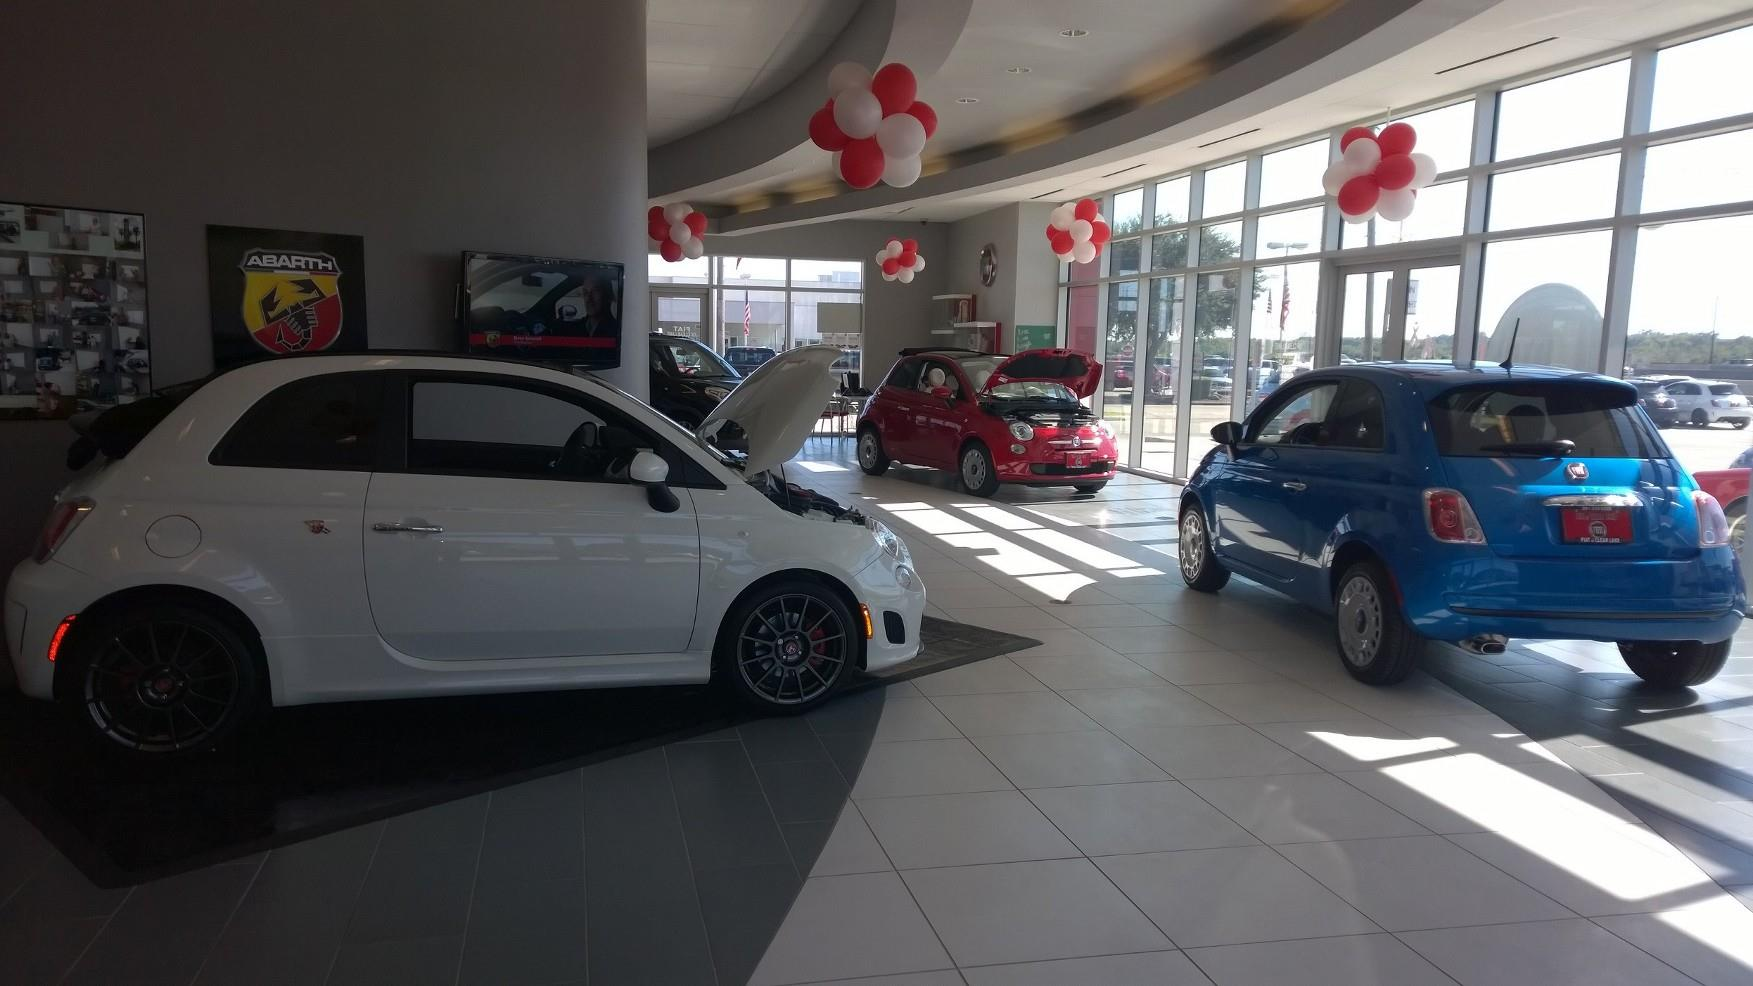 fiat of clear lake 15695 gulf fwy, webster, tx 77598 - yp